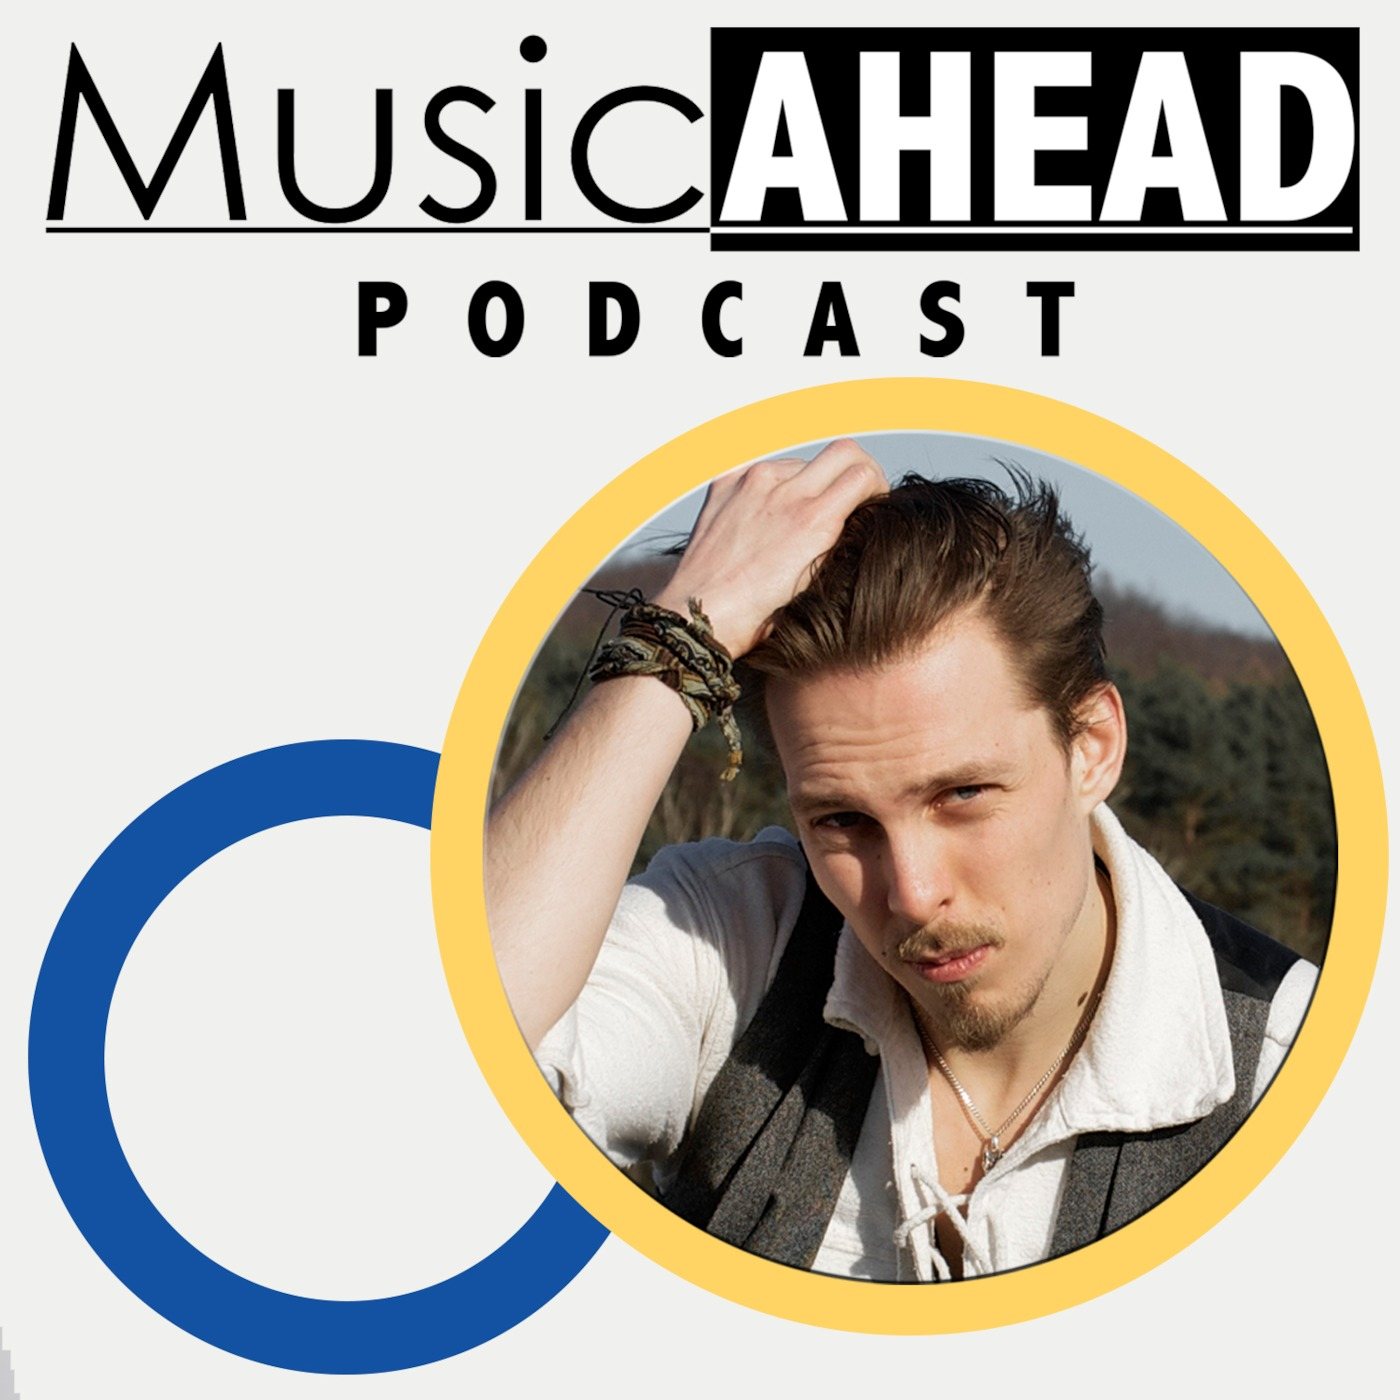 Music Ahead Podcast